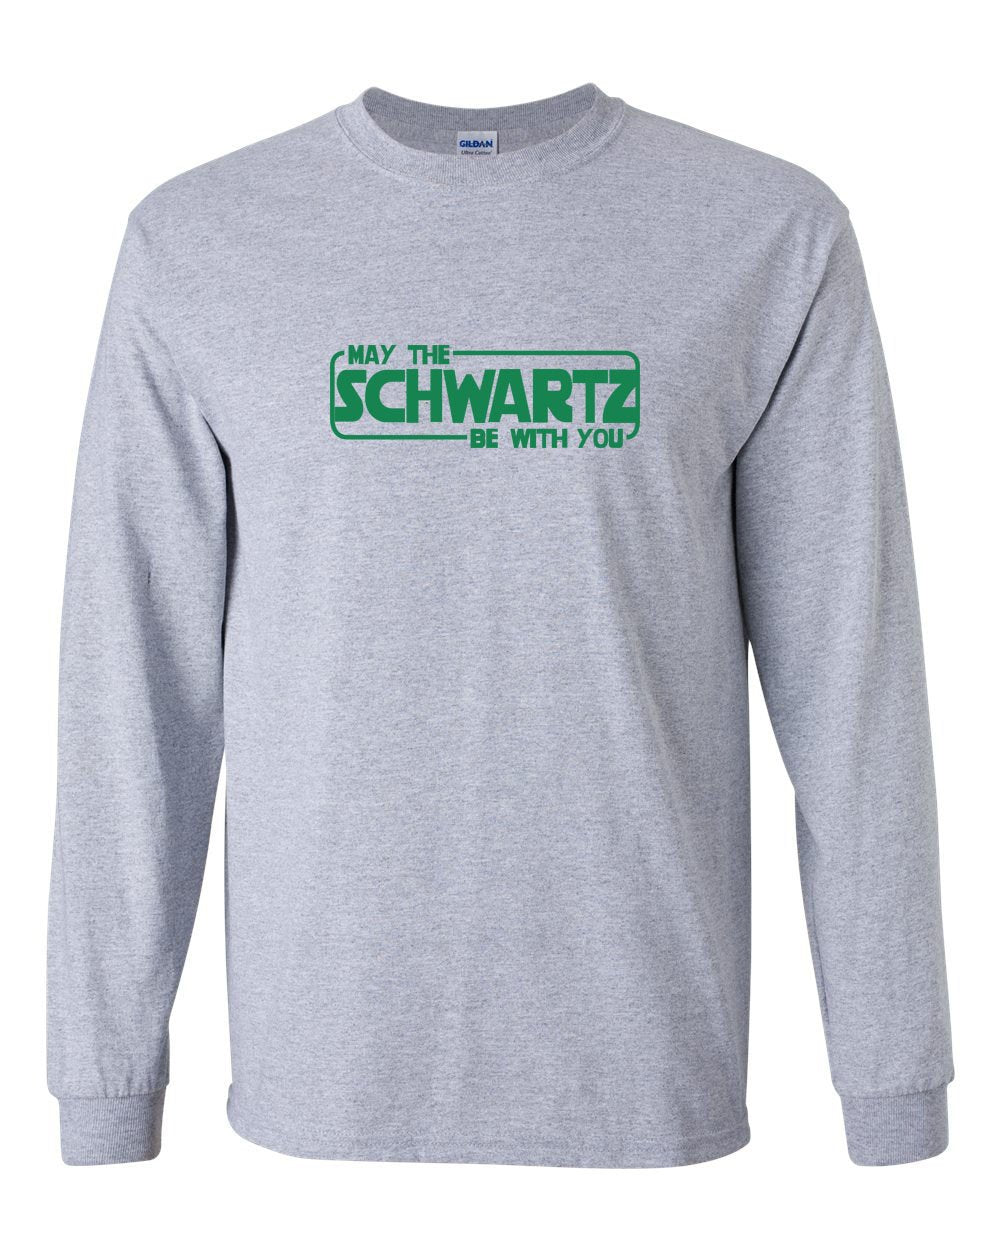 May The Schwartz Be With You MENS Long Sleeve Heavy Cotton T-Shirt